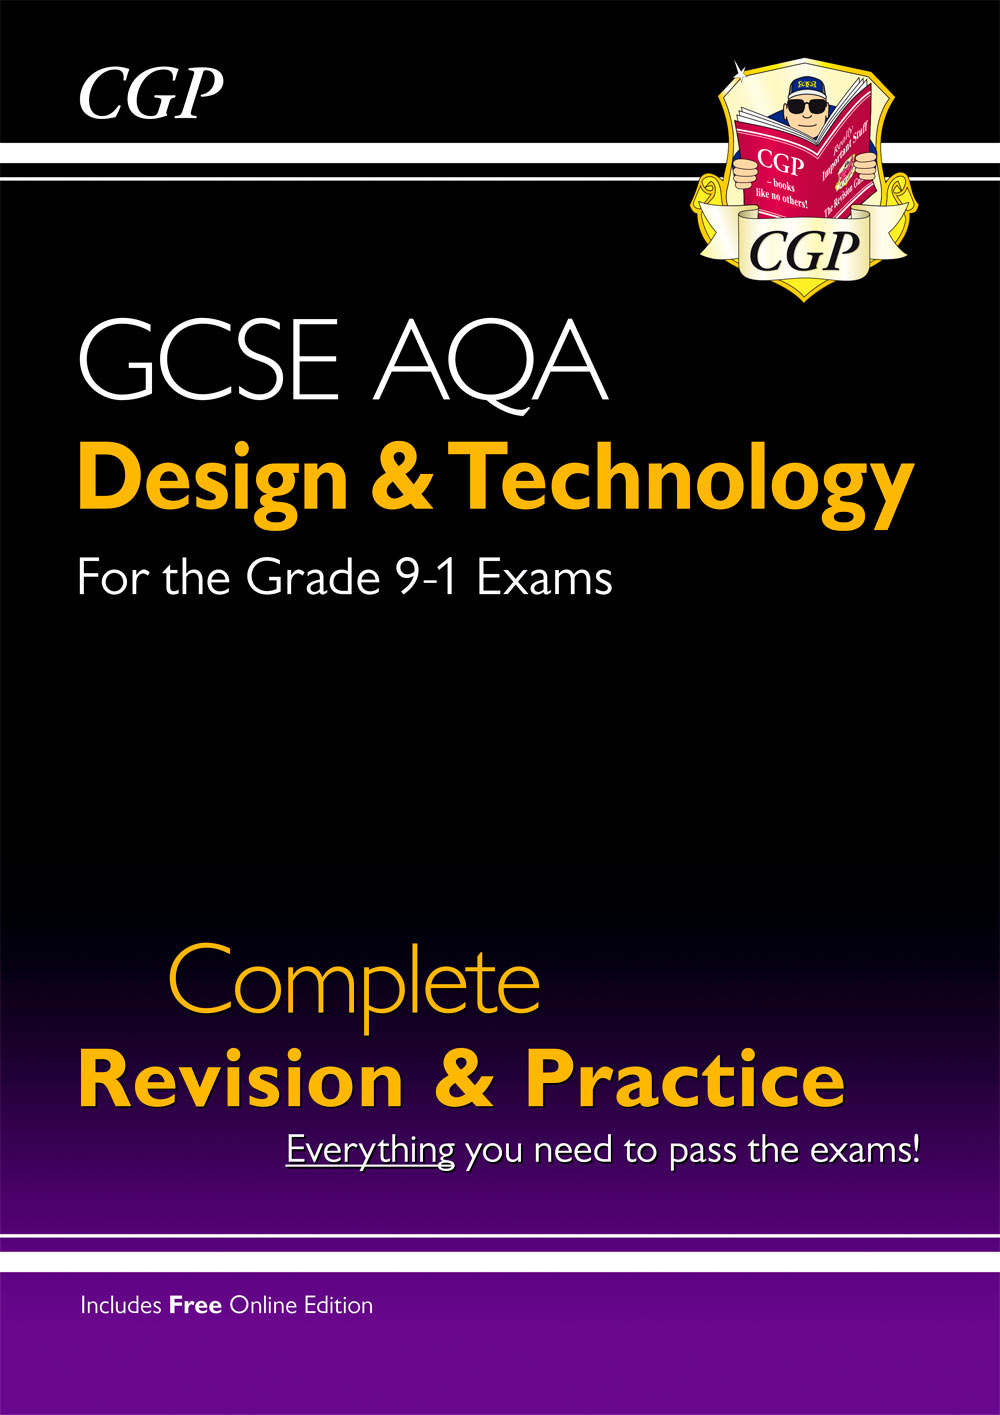 TAS41 - New Grade 9-1 Design & Technology AQA Complete Revision & Practice (with Online Edition)